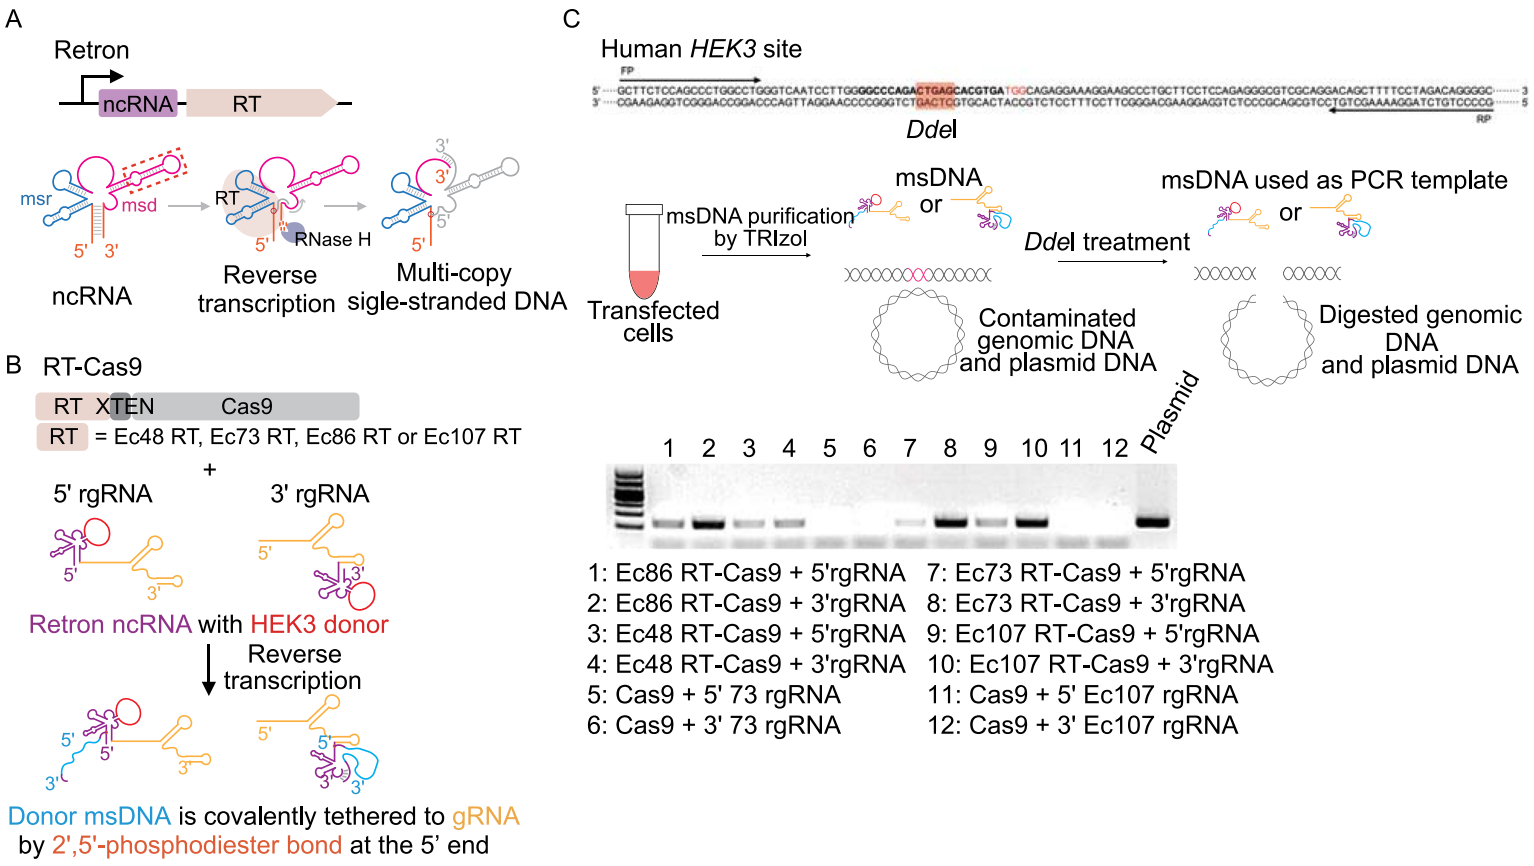 Confirmation of the suitability of retron editing system for mammalian genome editing